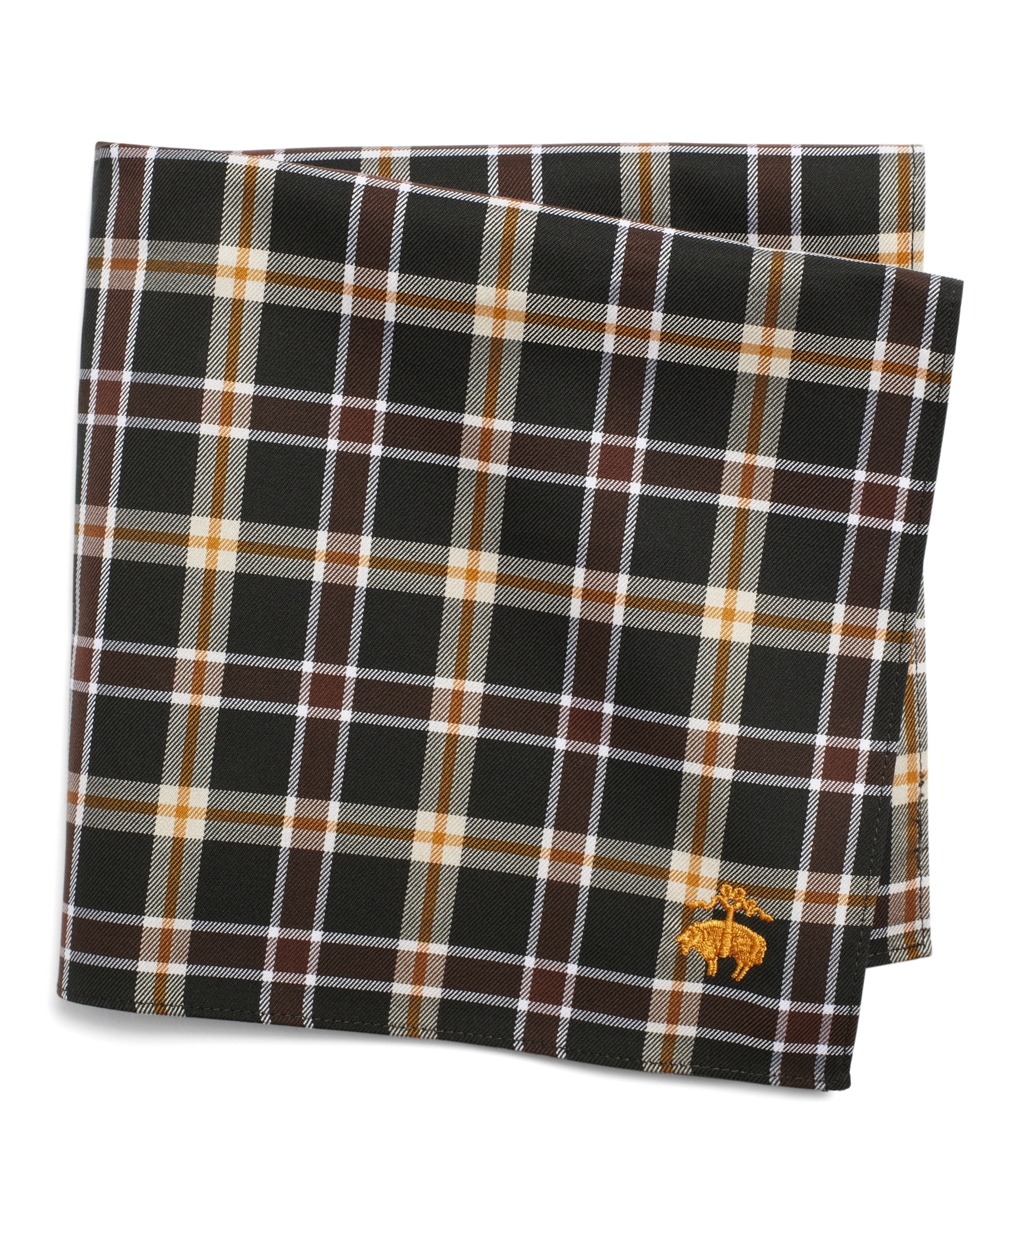 Stock up on fall accessories in the Spring! This pocket square from BrooksBrothers is the best one they have on sale right now (in my opinion, of course). Greatcolors, wear it with everything. And a bargain at only $10! | From: brooksbrothers.com